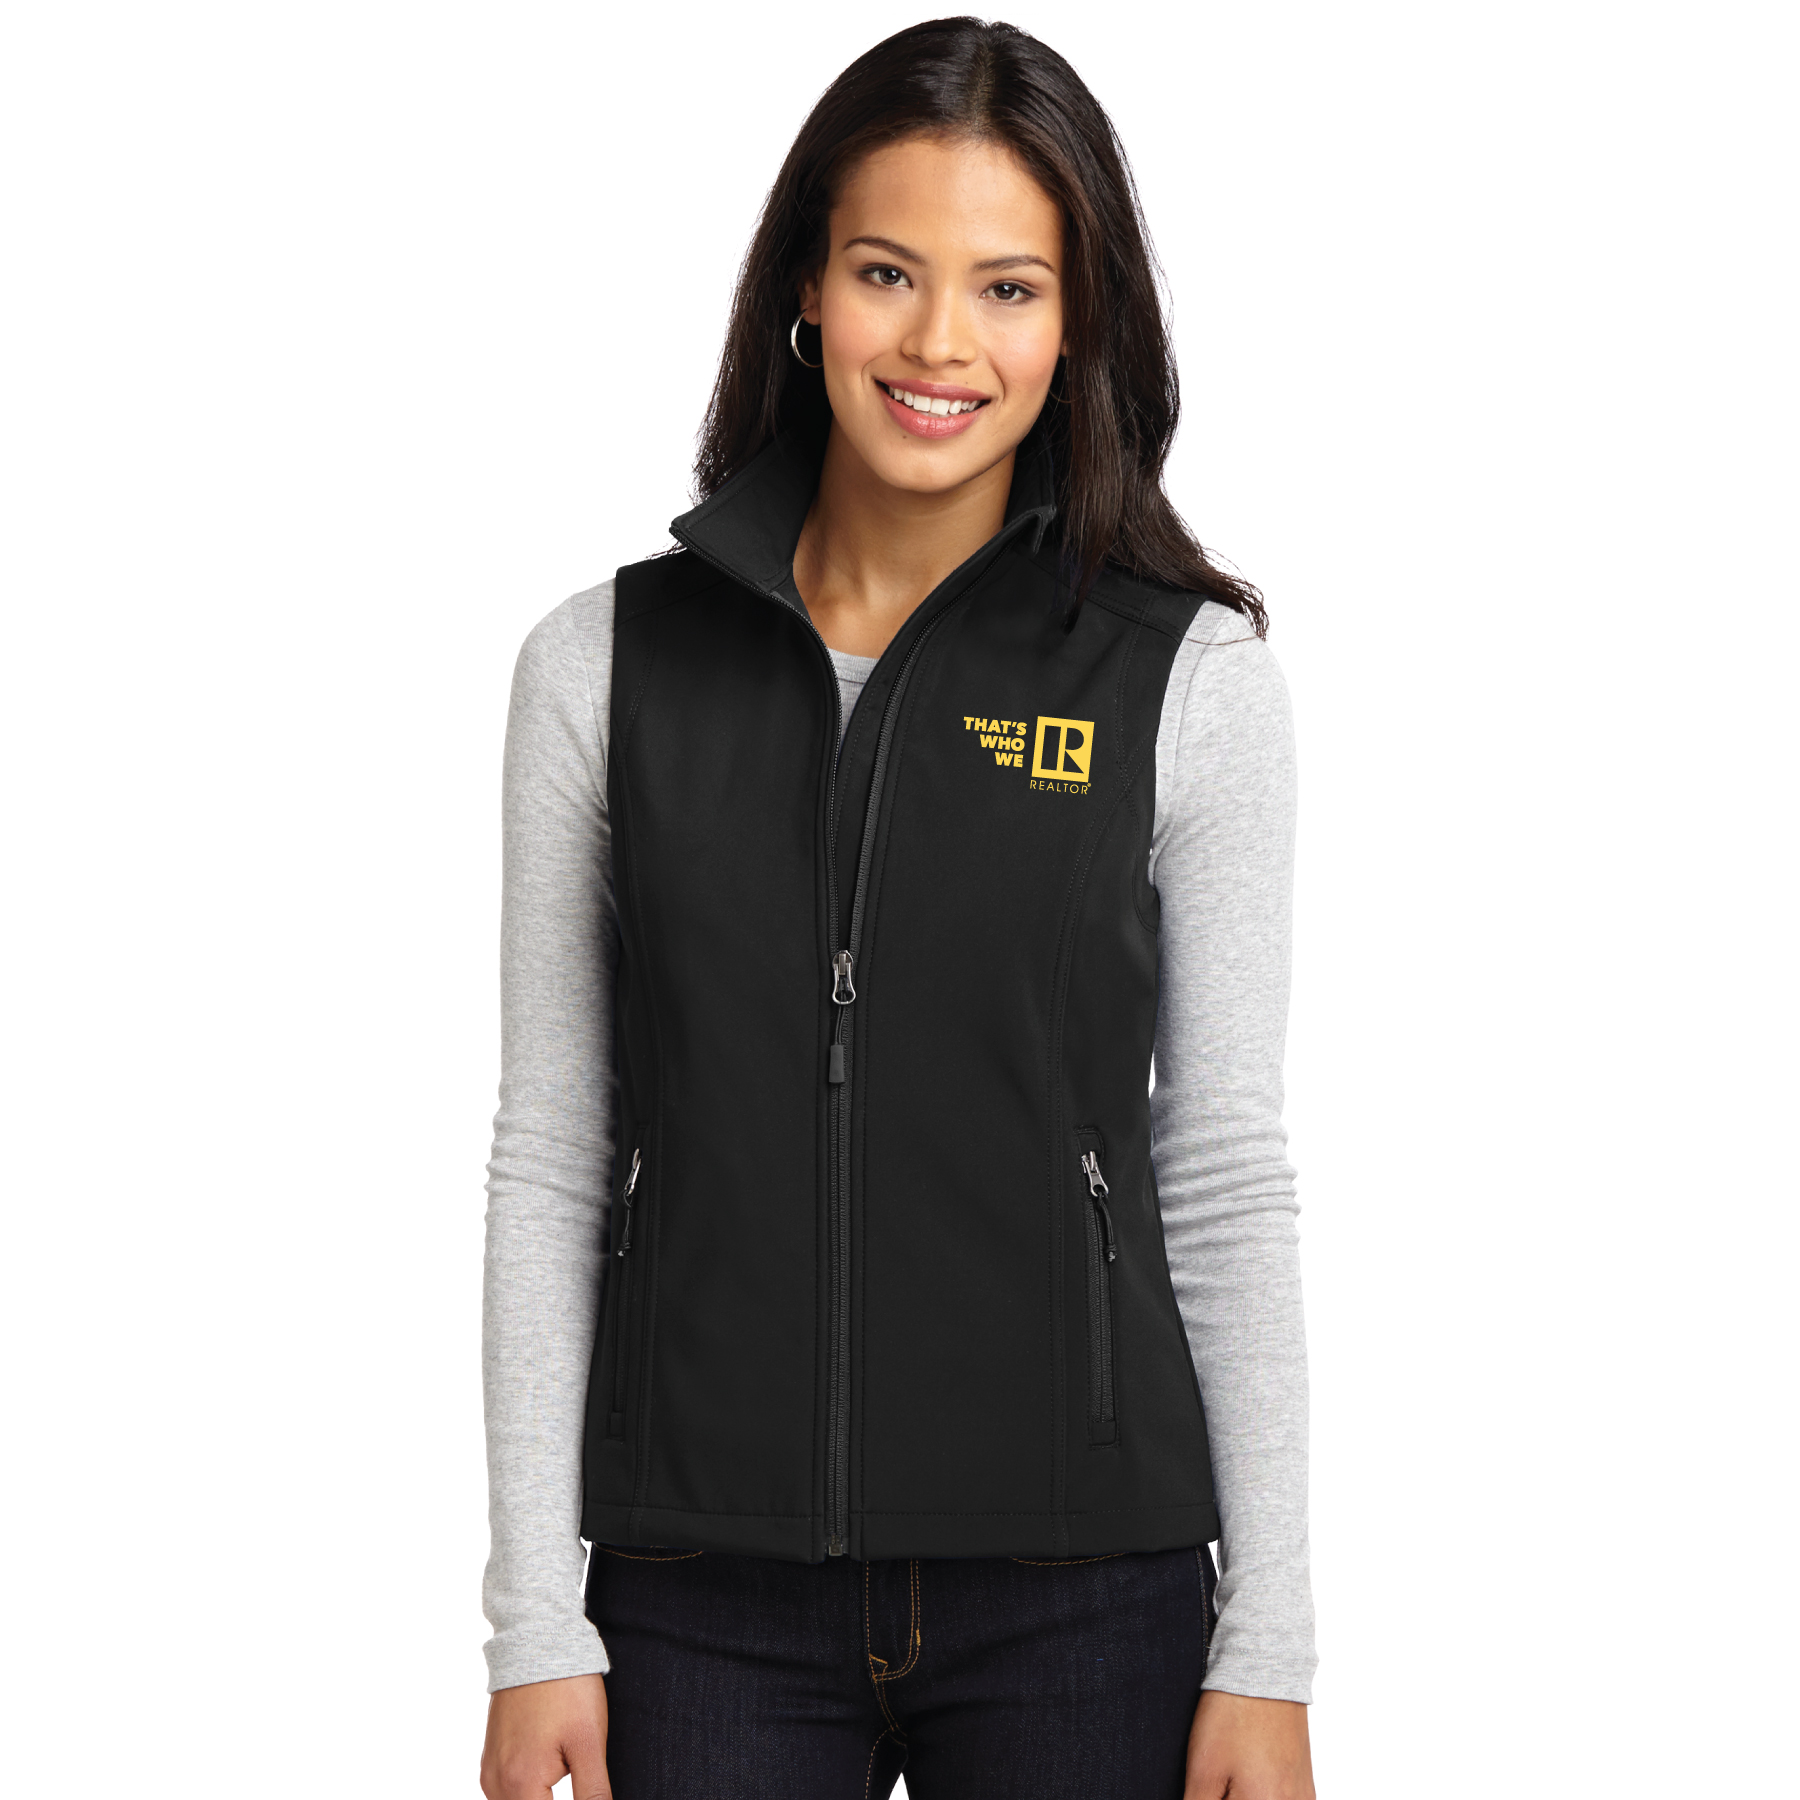 """Thats Who We R"" Ladies Core Soft Shell Vest Twwr,Thats,Whos,Wes,Ares,ladies, softs, shells, vests"